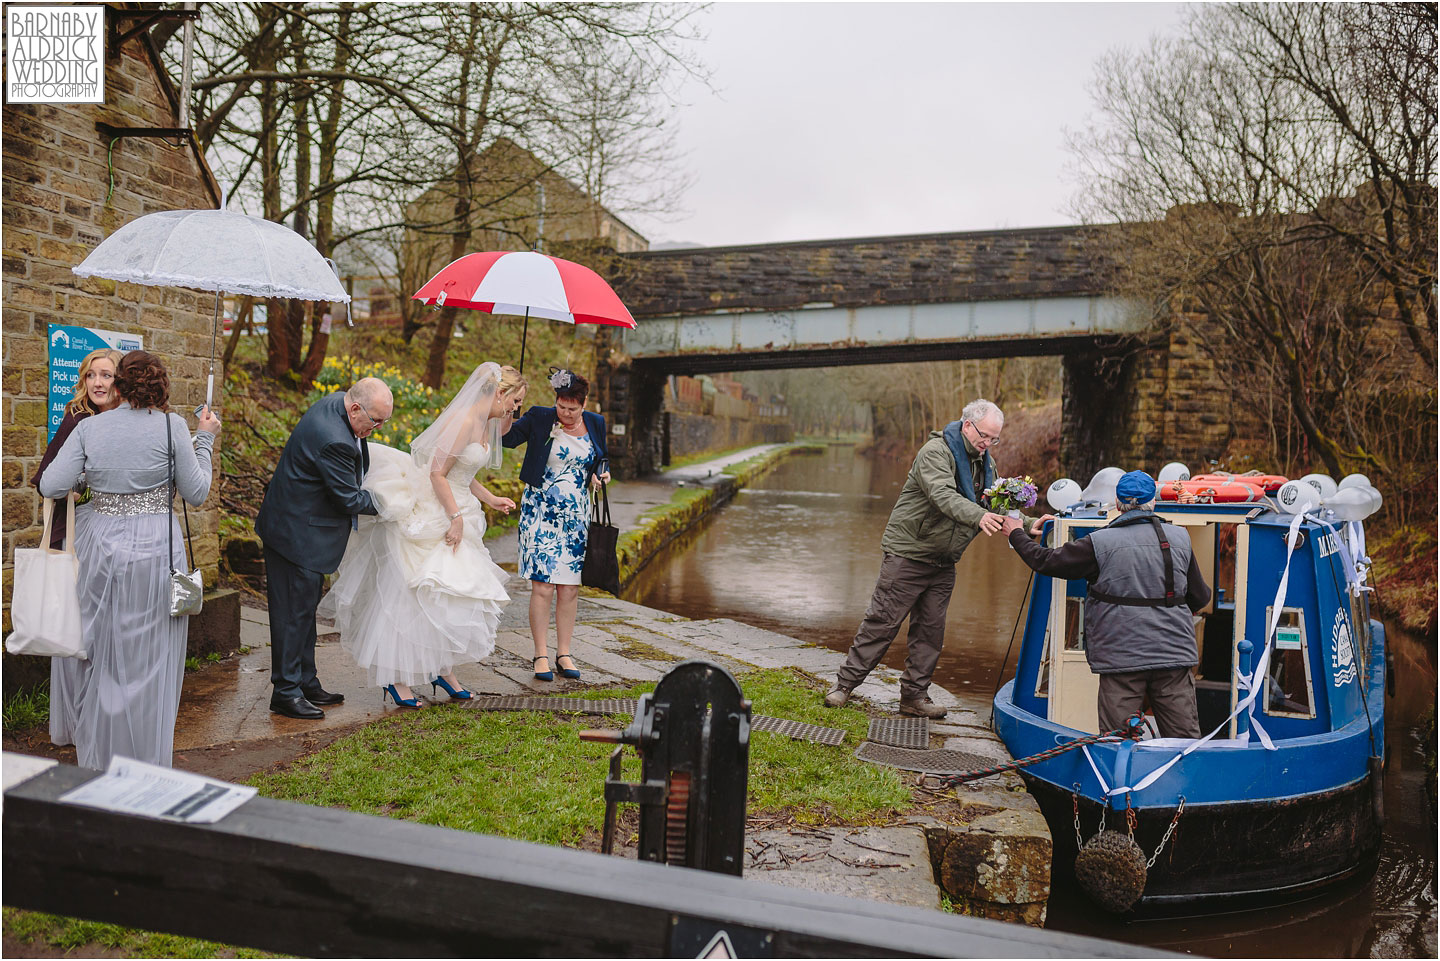 The bride boards a canal boat before going to her wedding at Standedge Tunnel and Visitor Centre in Marsden